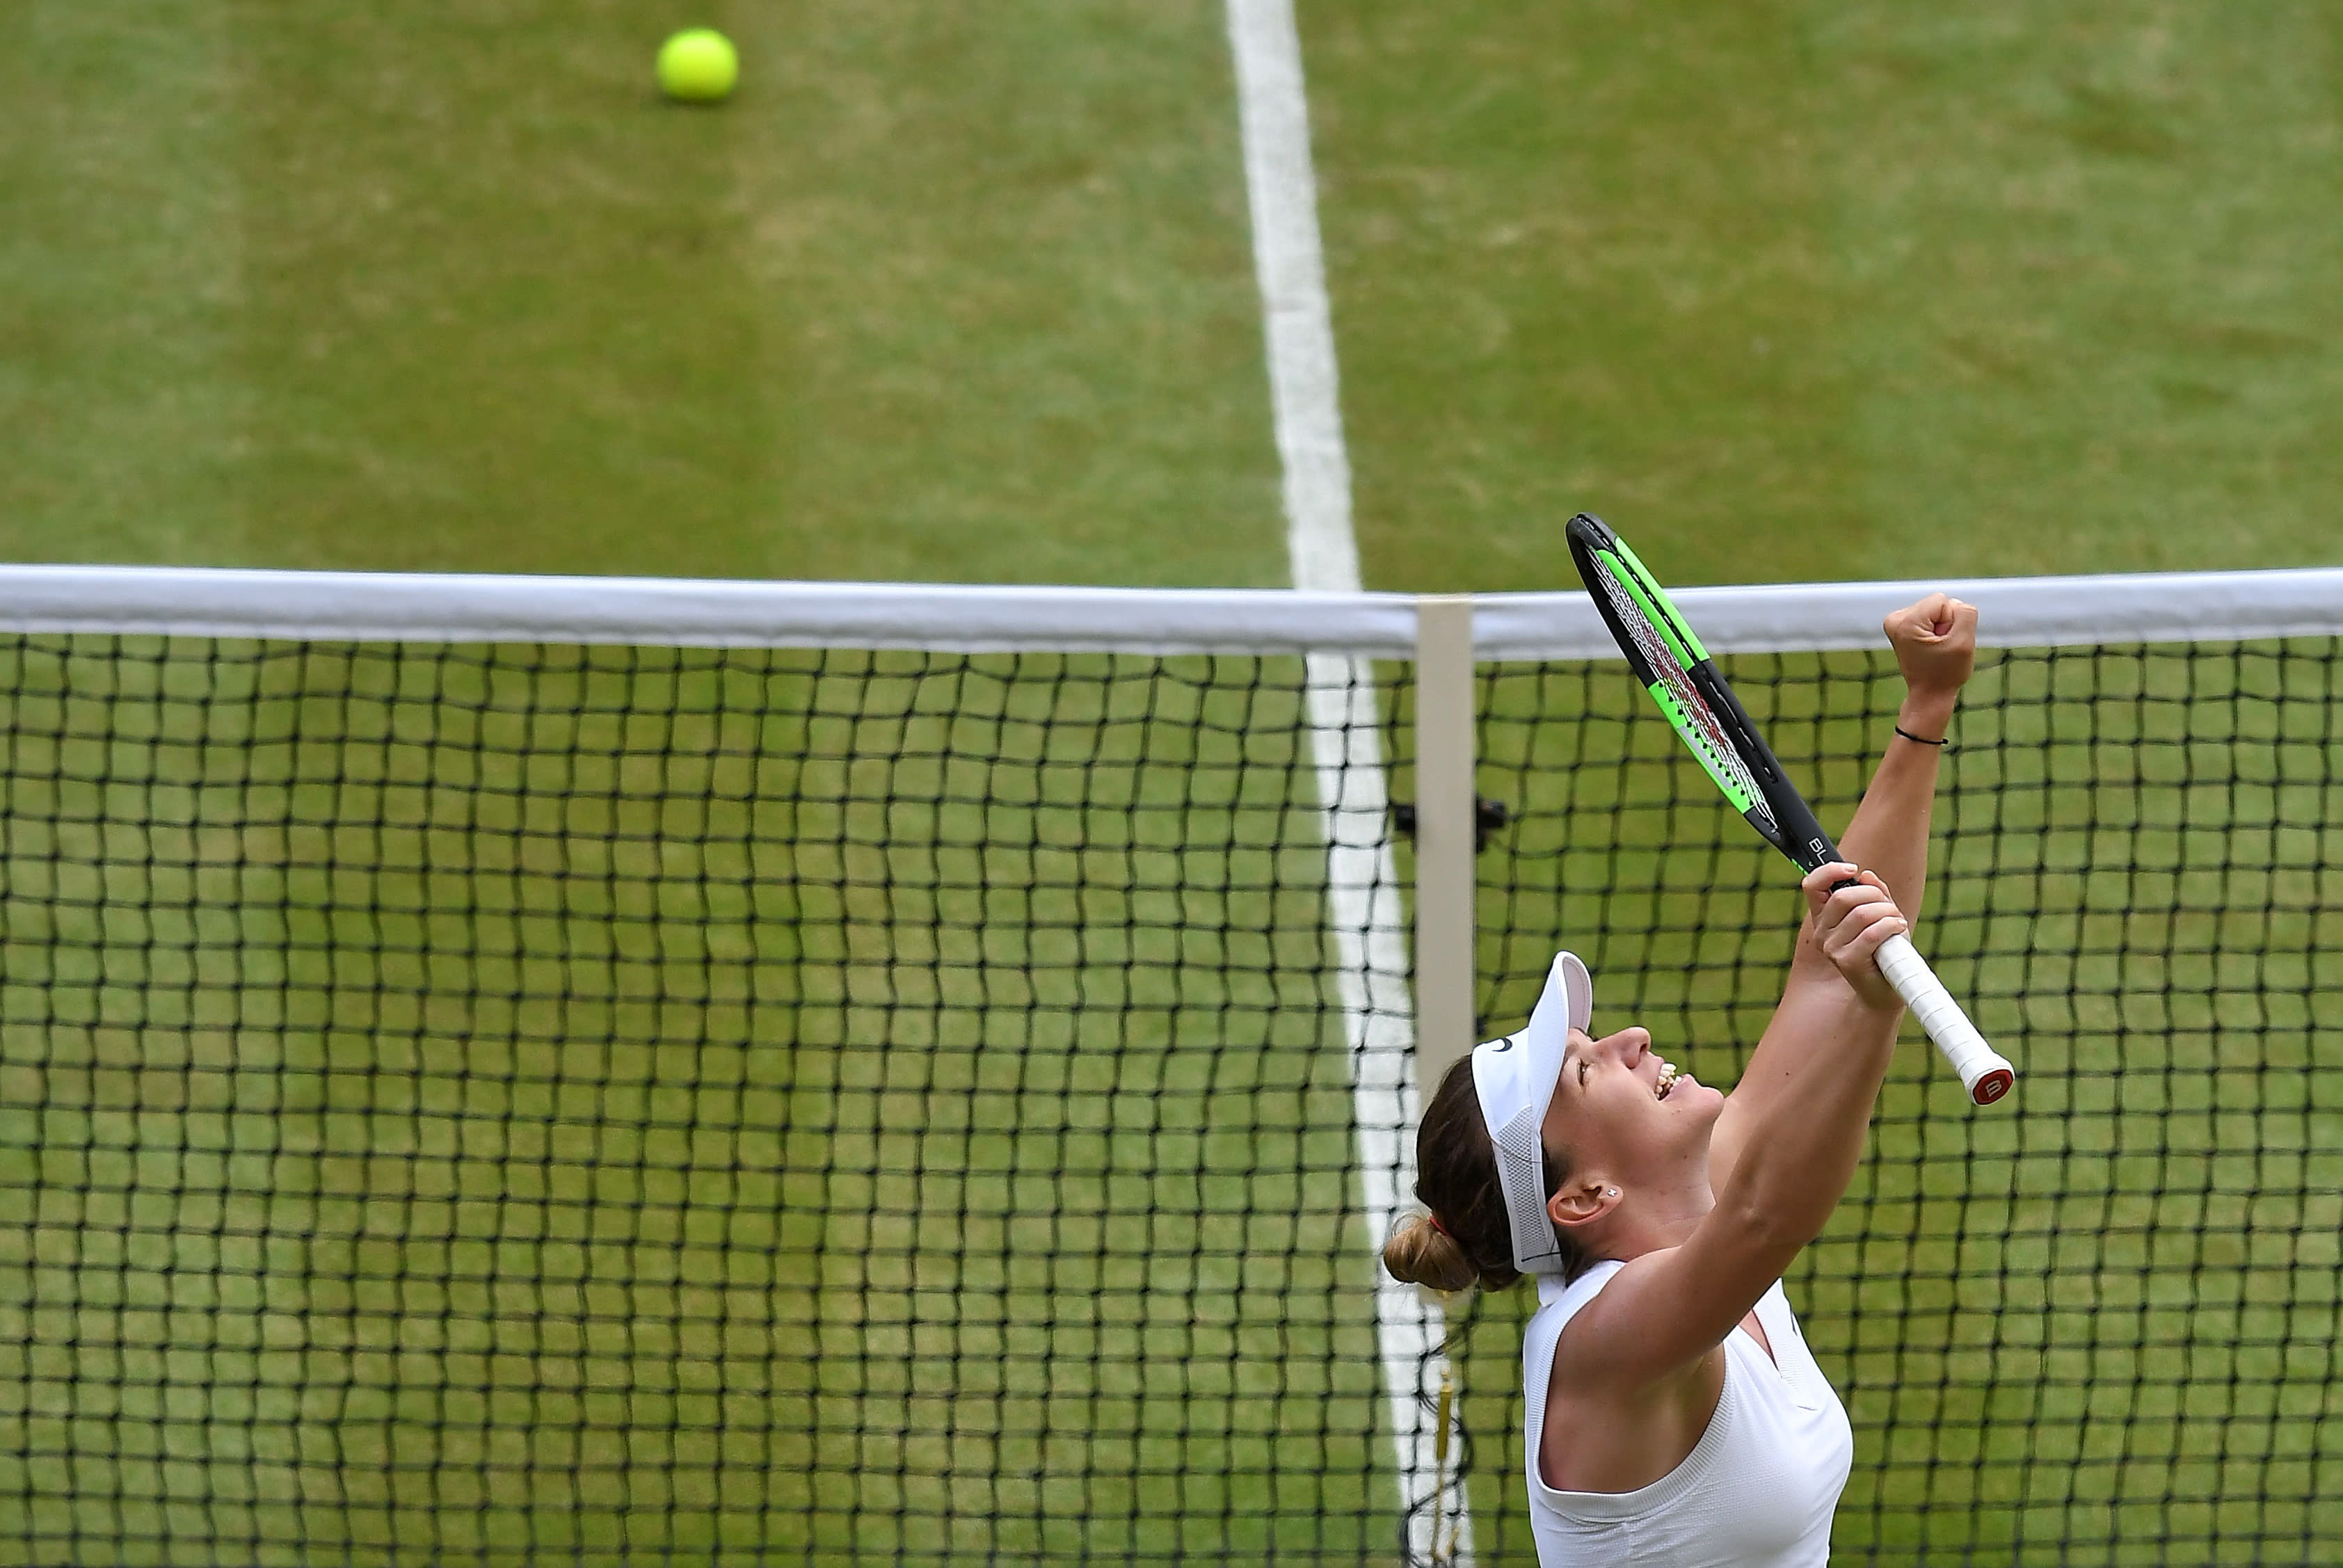 Simona Halep blitzes Serena Williams to win Wimbledon title